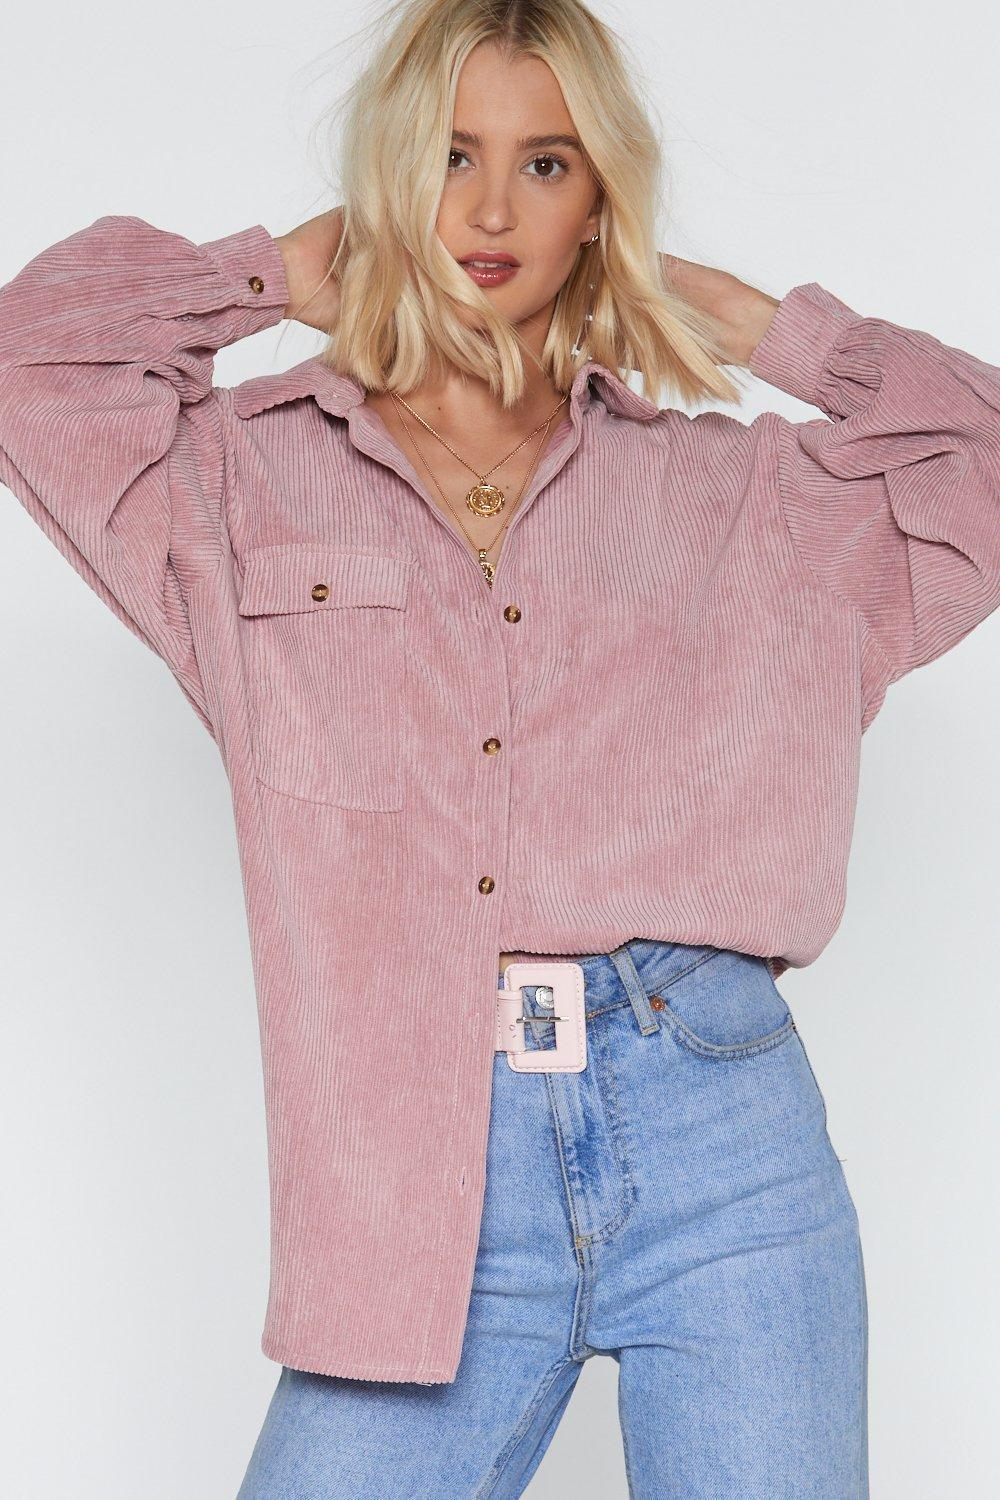 a939c6e4 Nasty Gal Easy There Oversized Corduroy Shirt in Purple - Lyst